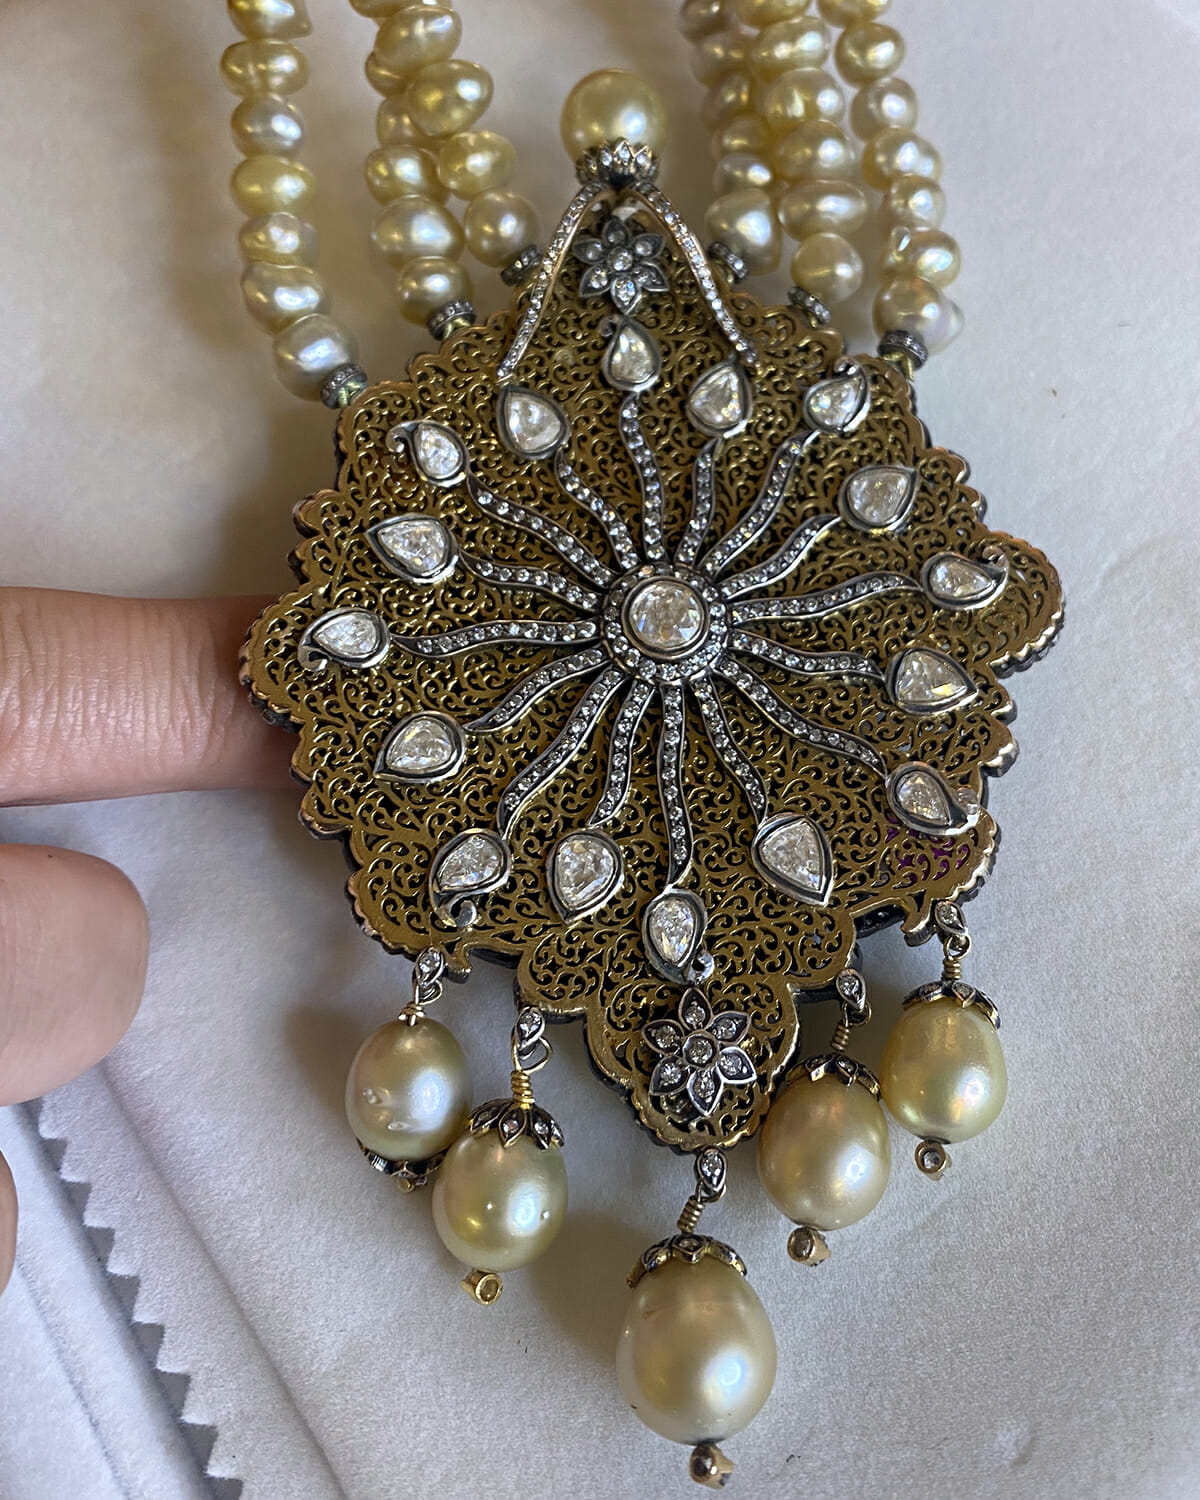 Antique diamond and pearl necklace.